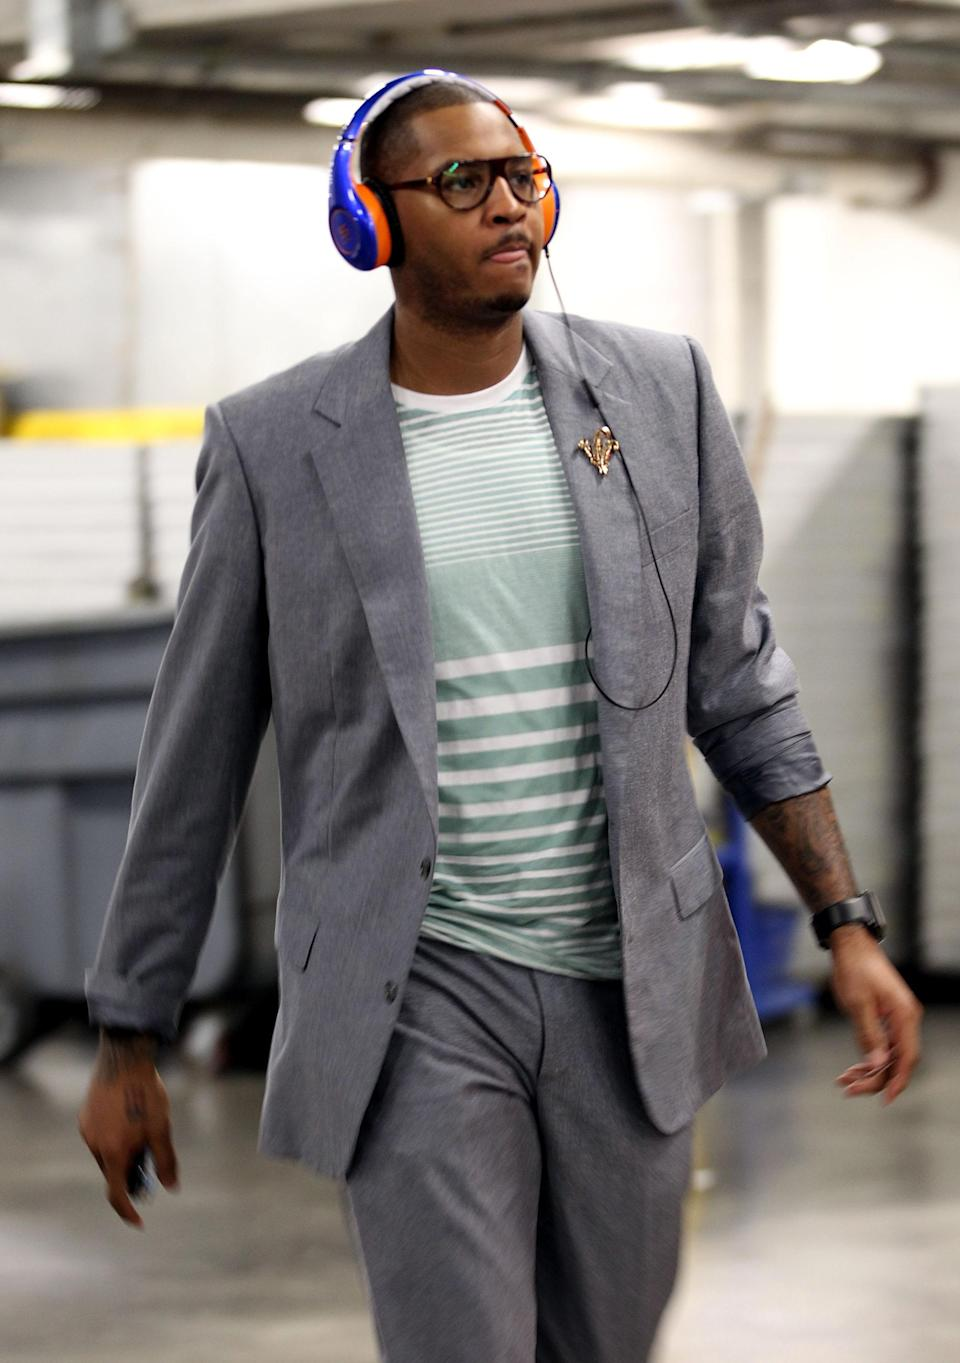 MIAMI, FL - MAY 09: Carmelo Anthony of the New York Knicks enters the arena prior to his team taking on the Miami Heat in Game Five of the Eastern Conference Quarterfinals in the 2012 NBA Playoffs on May 9, 2012 at the American Airines Arena in Miami, Florida. (Photo by Marc Serota/Getty Images)